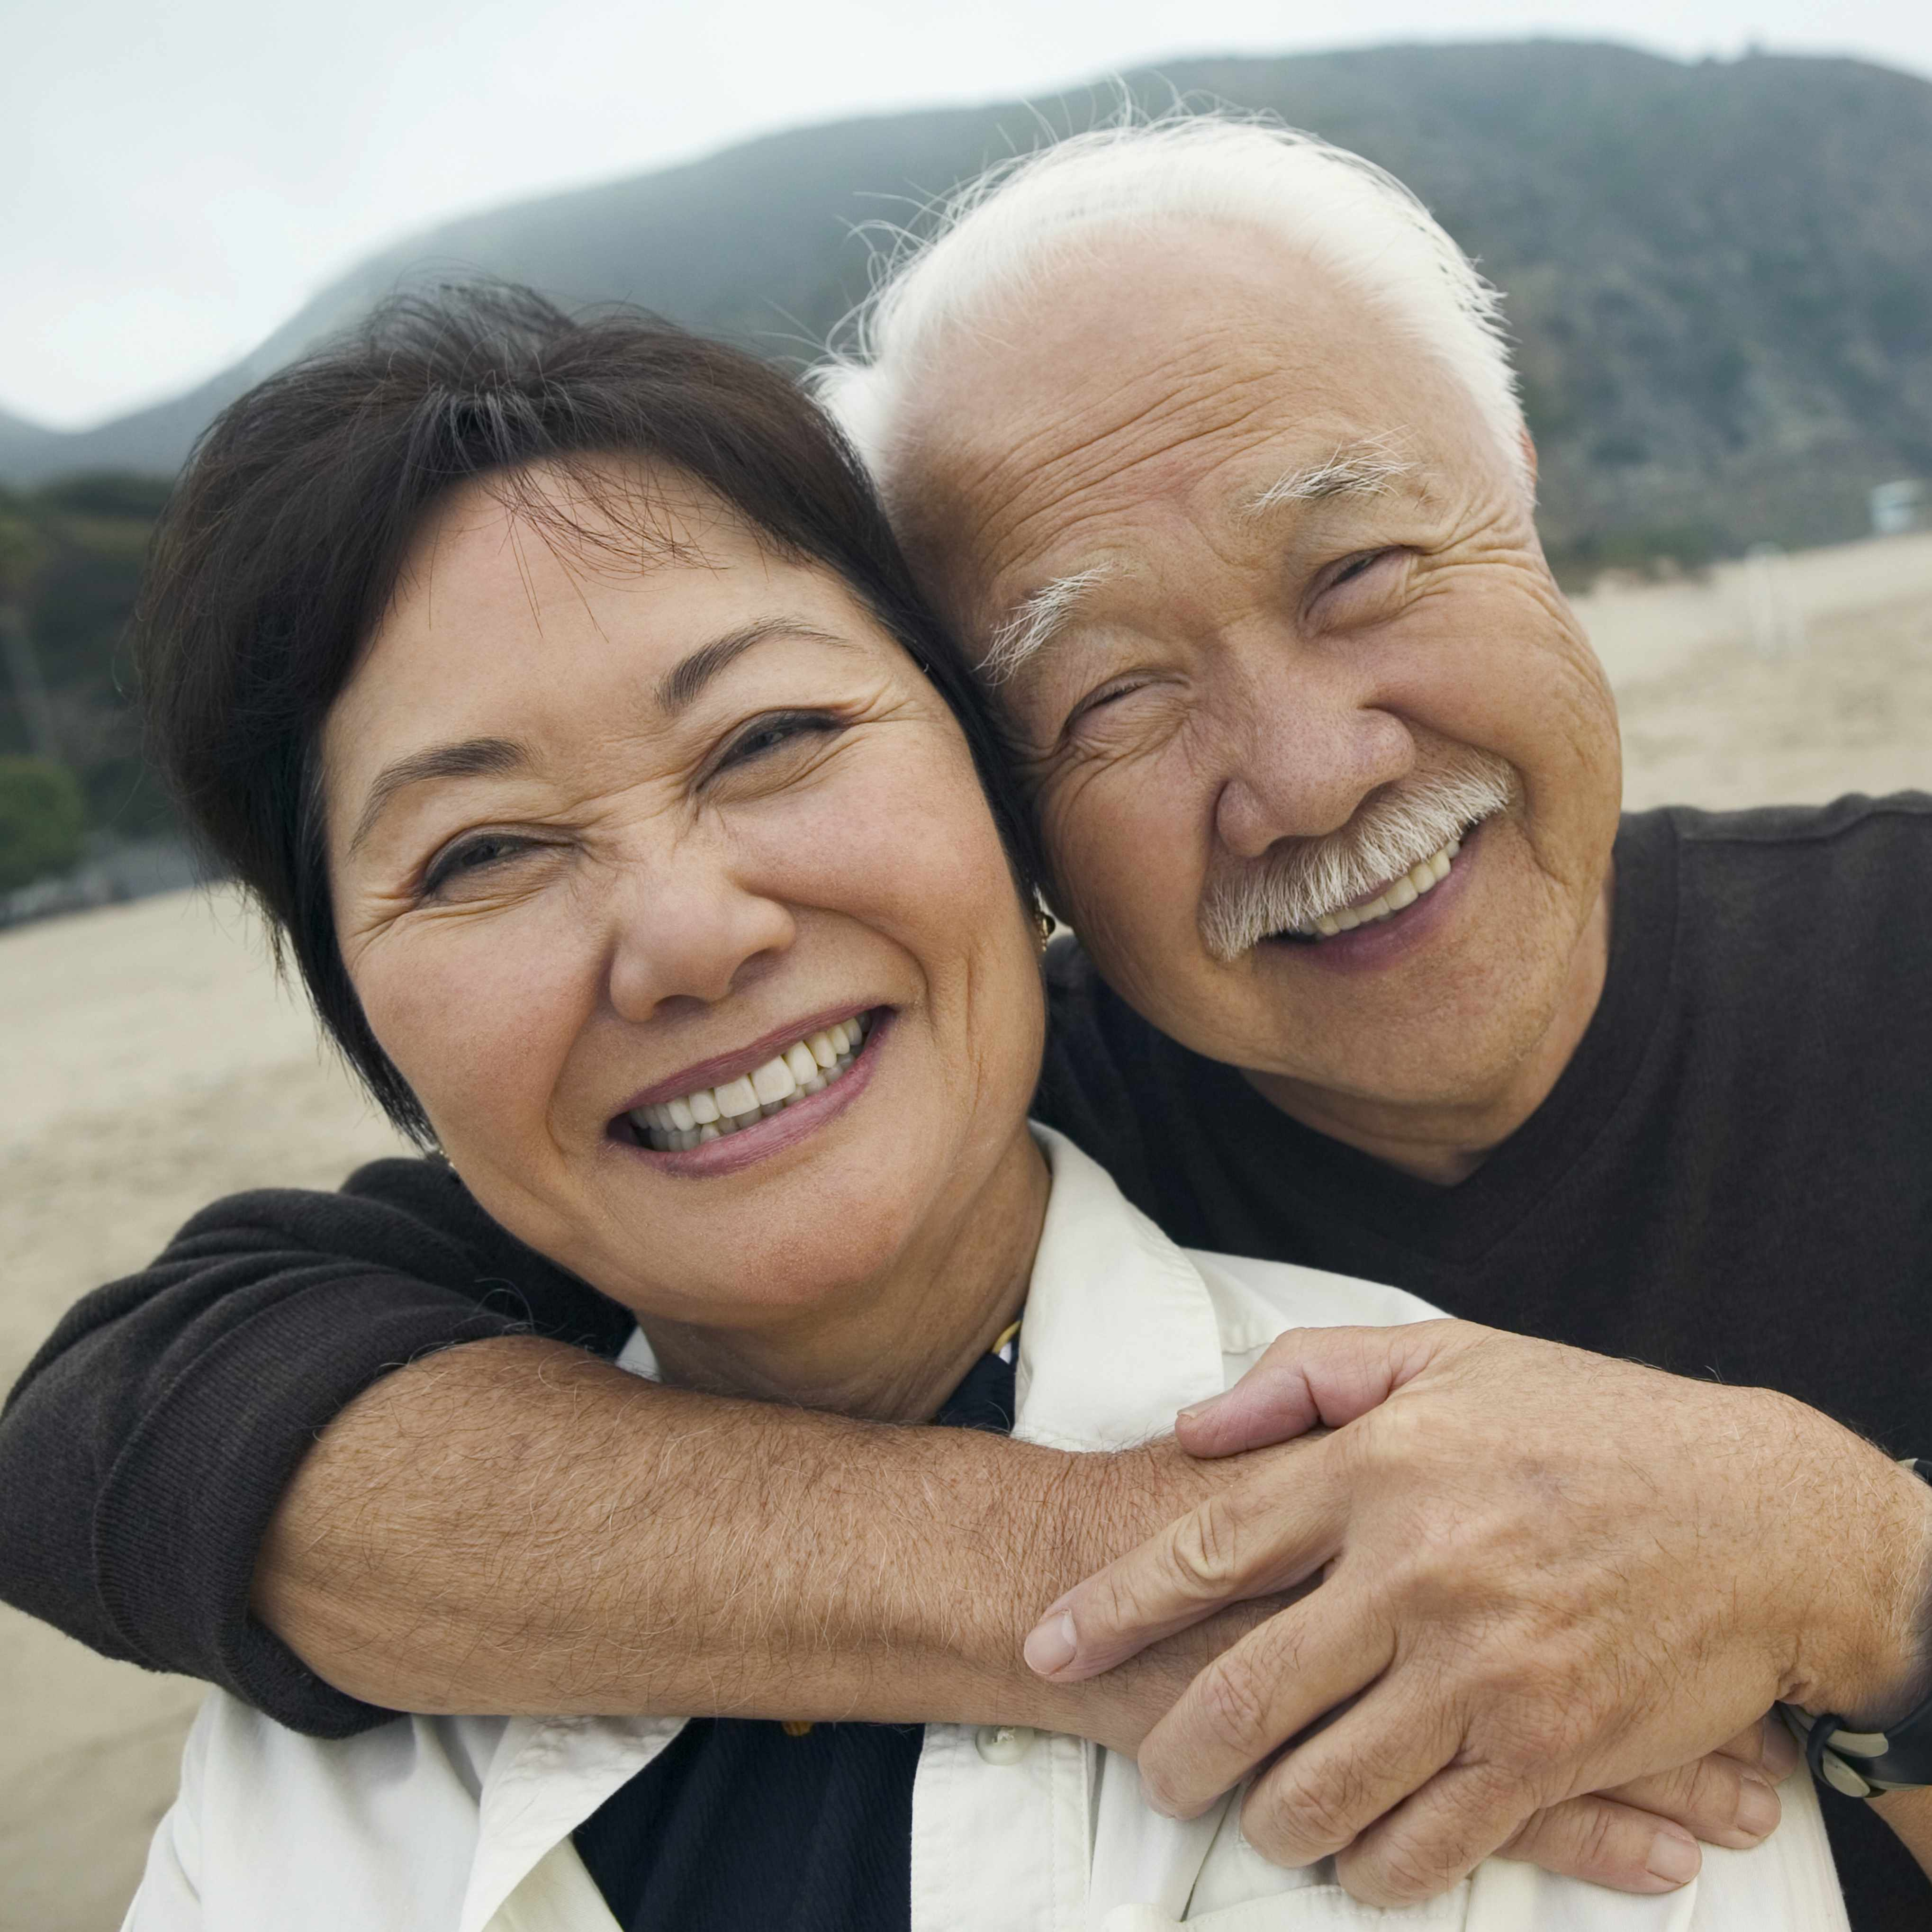 a close-up of a smiling senior couple on a beach, with the man's arms around the woman's shoulders